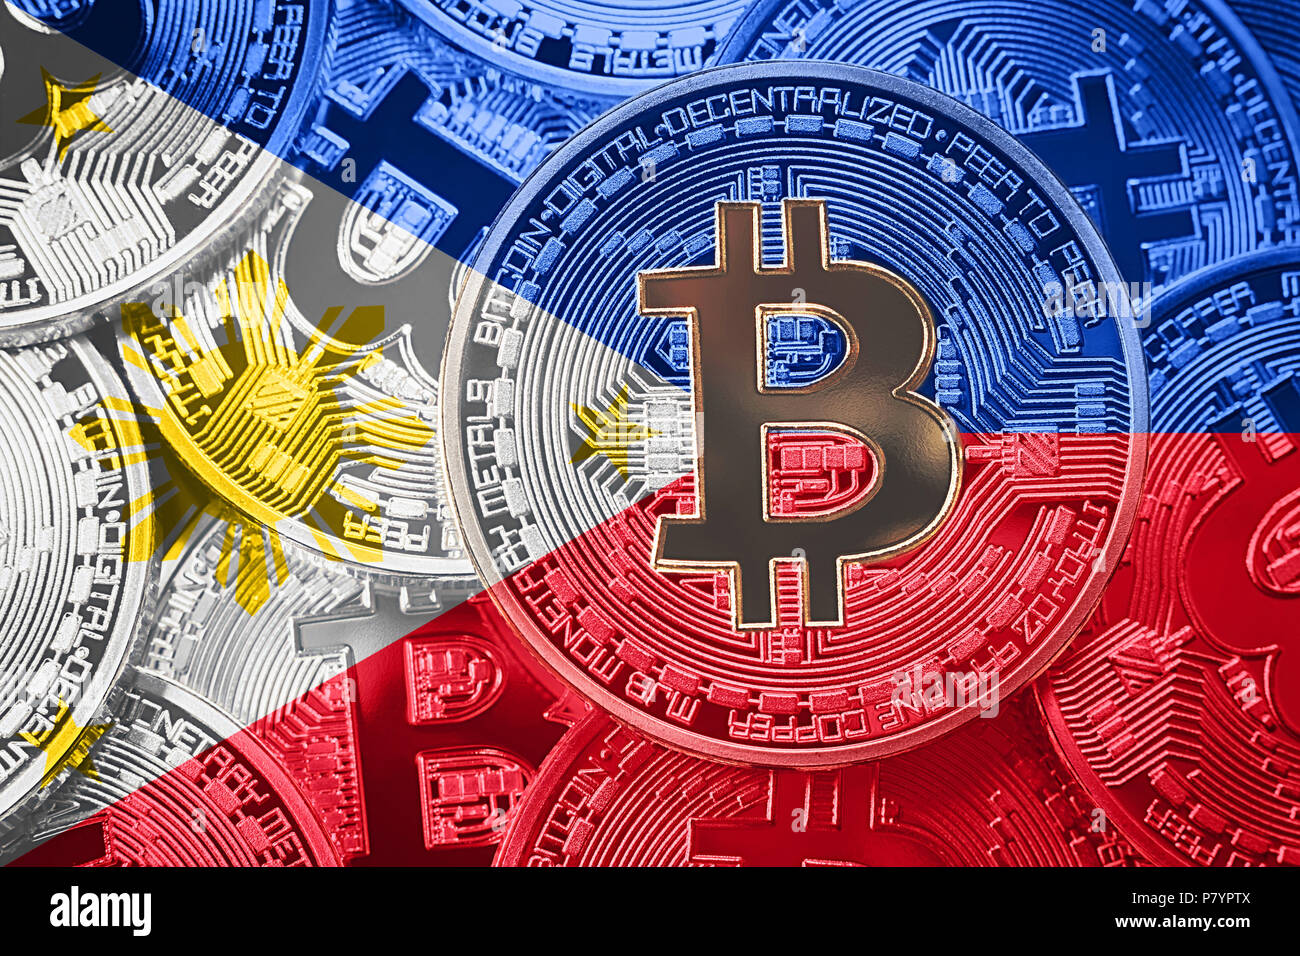 Buy and sell bitcoins philippines flag afl round 22 betting odds